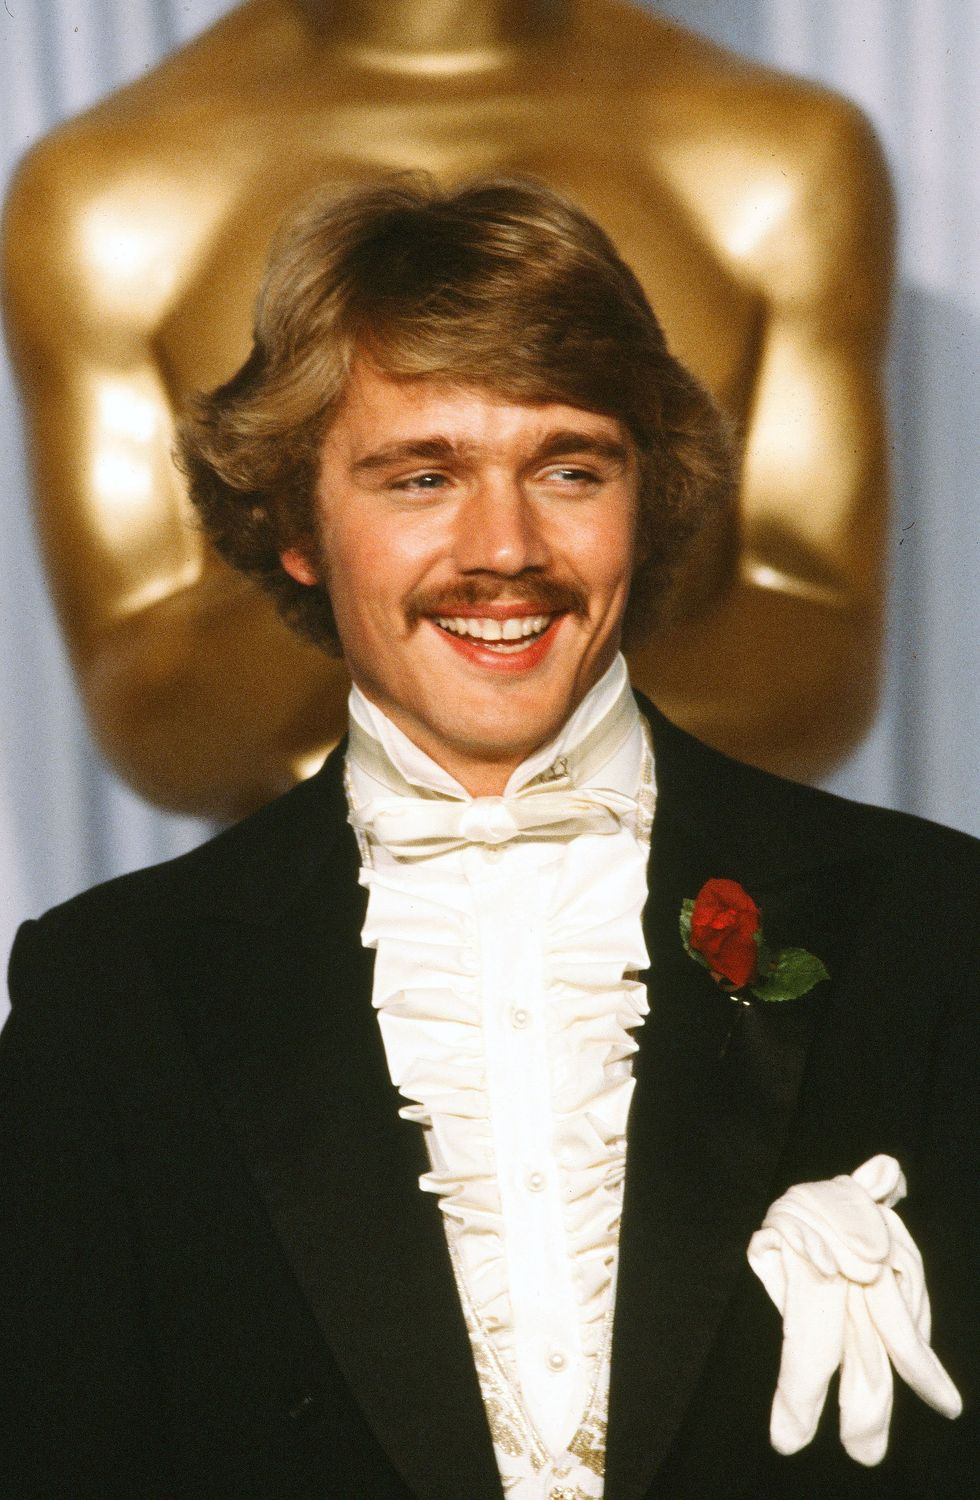 Indisputable Evidence That the Eighties Was the Greatest Era for Oscars Style